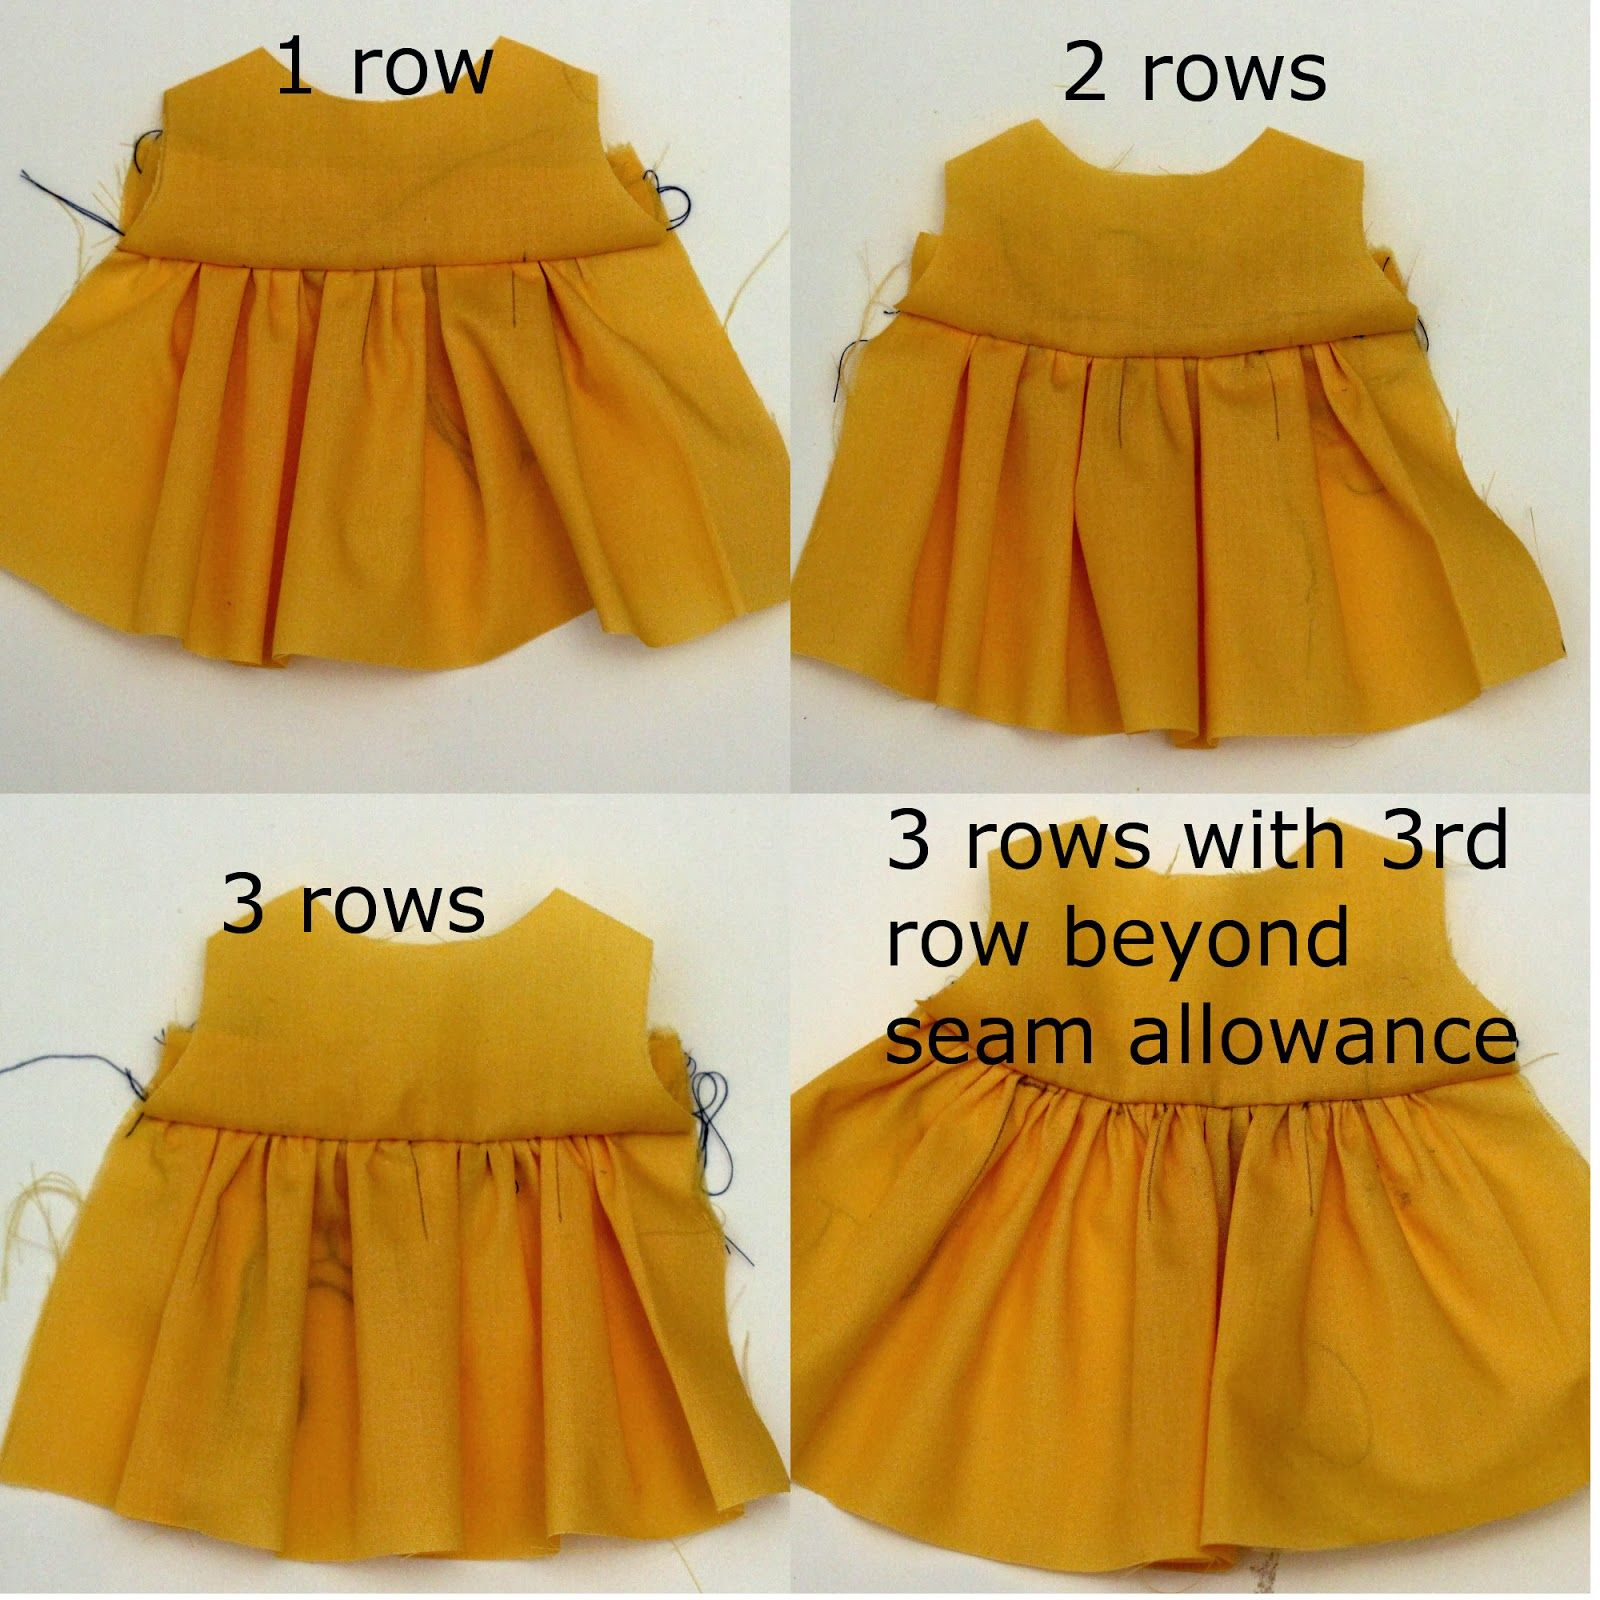 Widi sewing blog step by step instructions tutorials how to widi sewing blog step by step instructions tutorials how to and not baditri Gallery